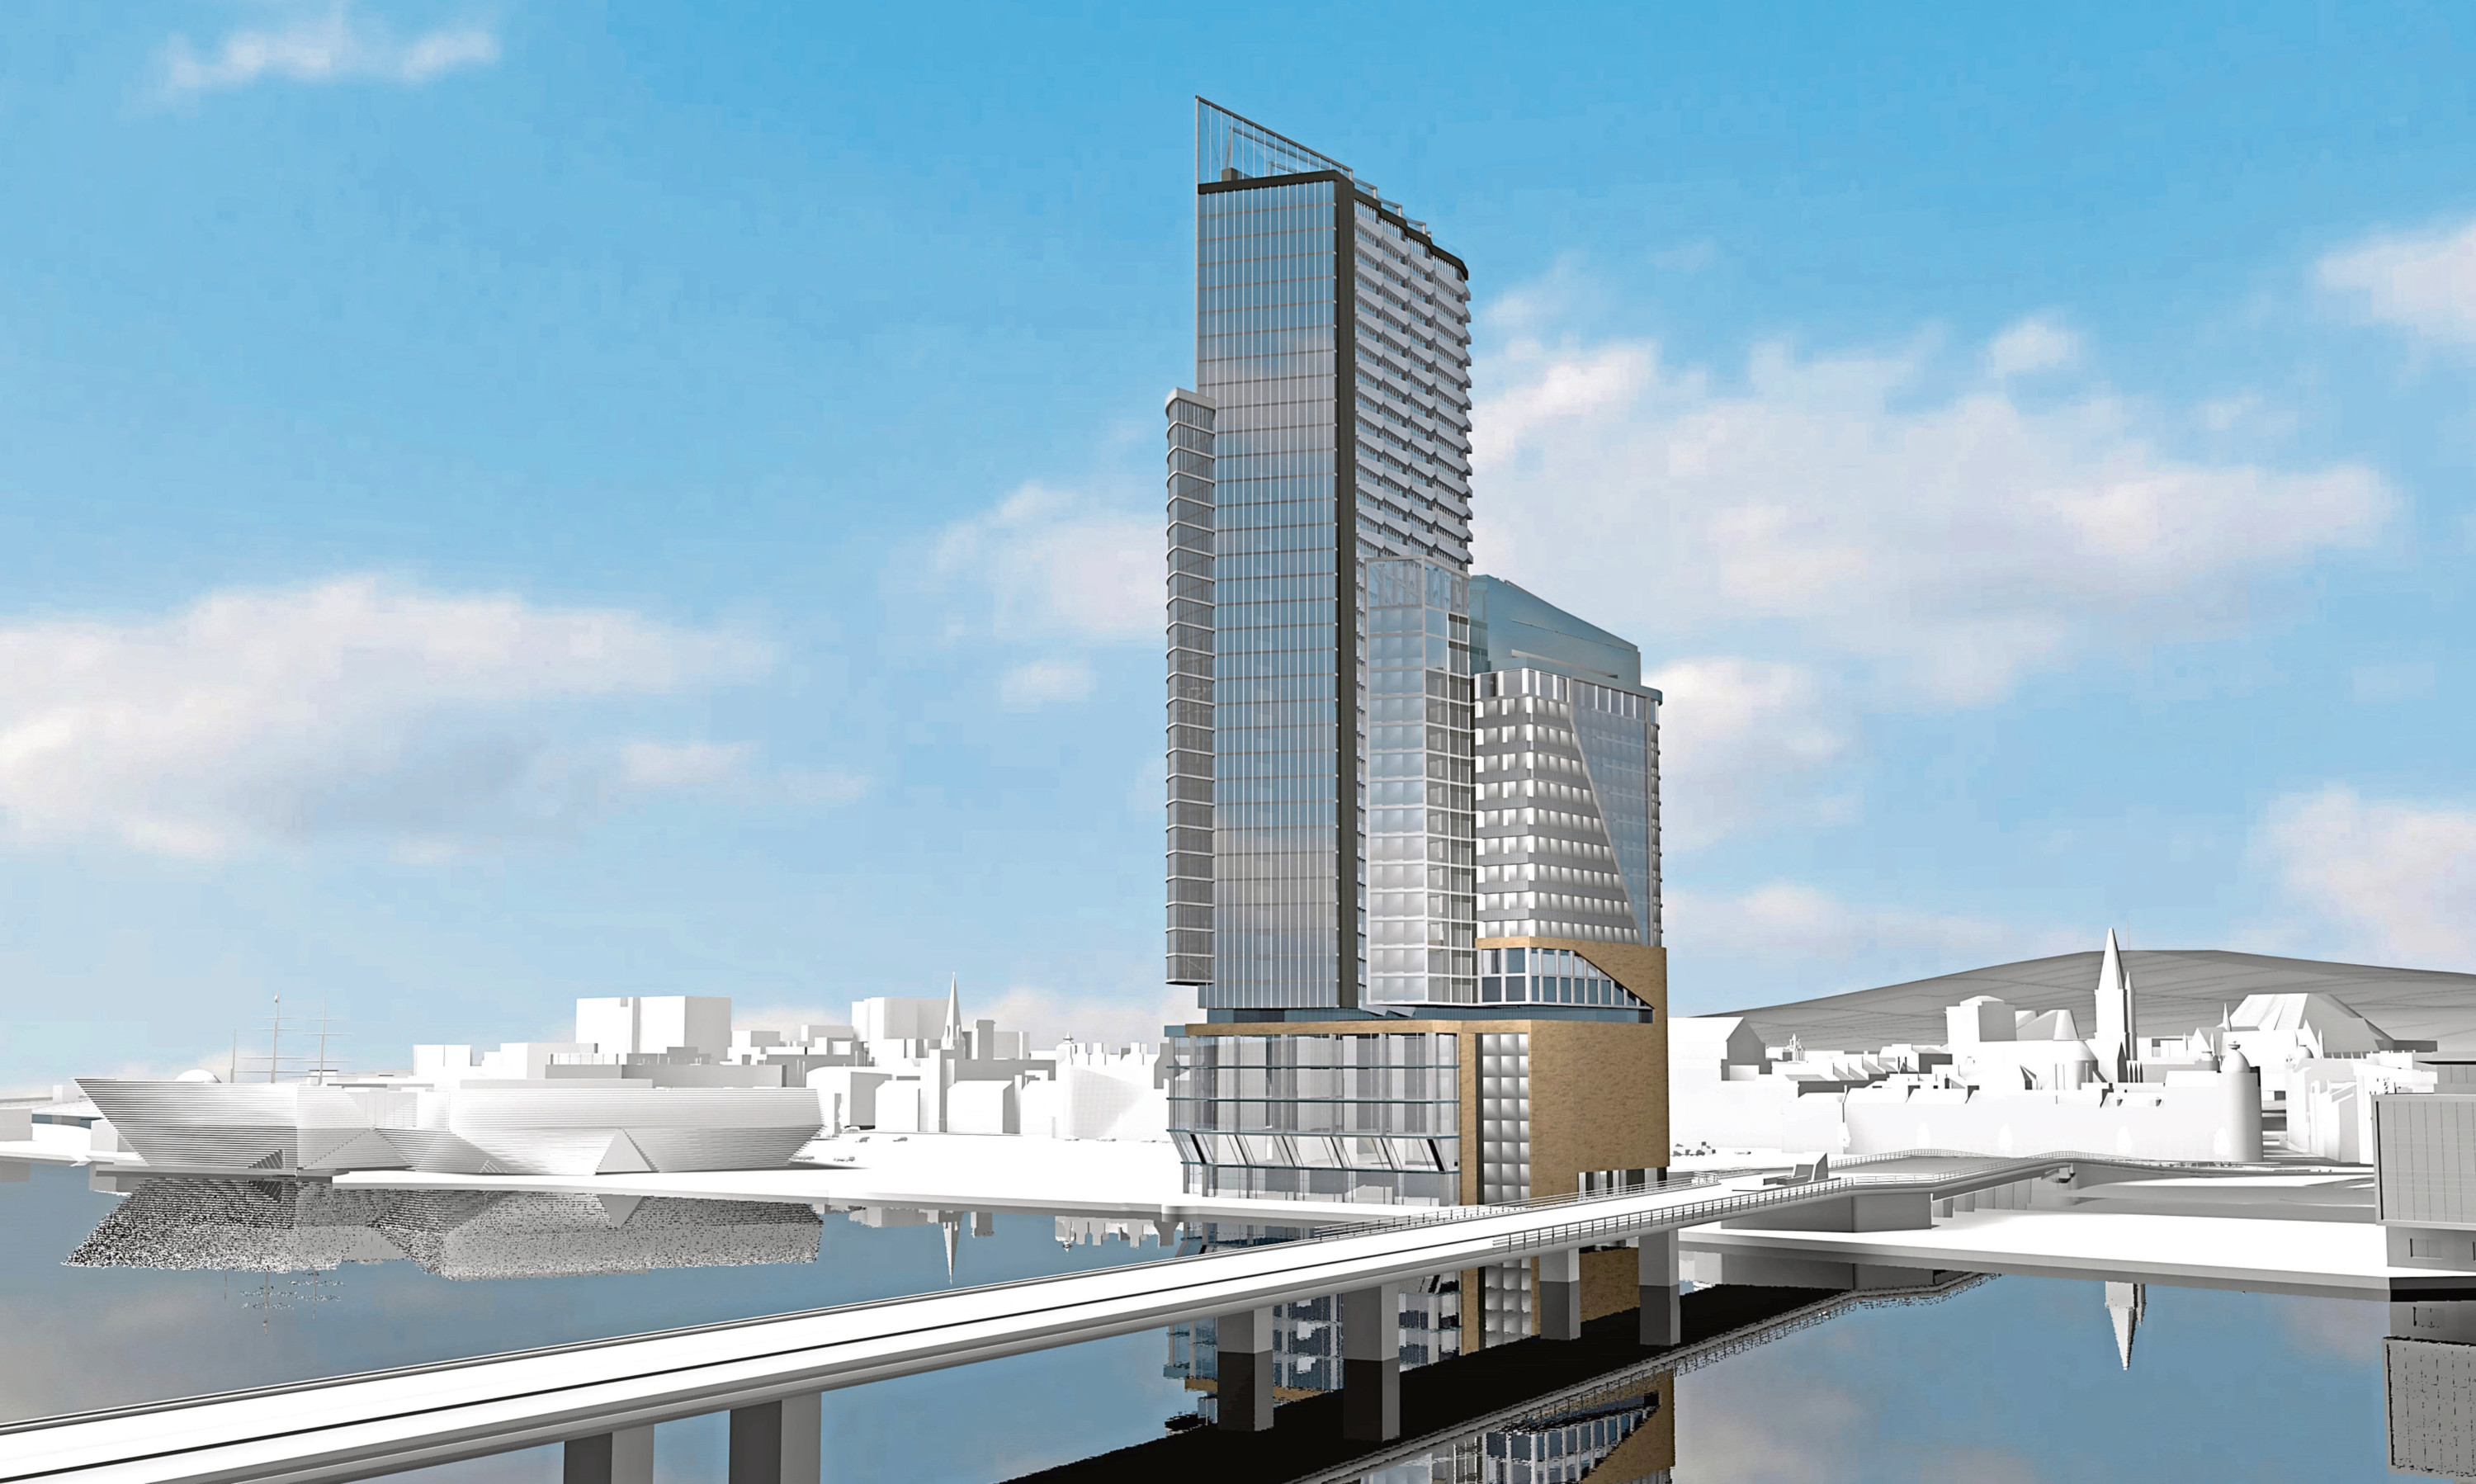 The proposed Discovery Heights skyscraper at Dundee Waterfront